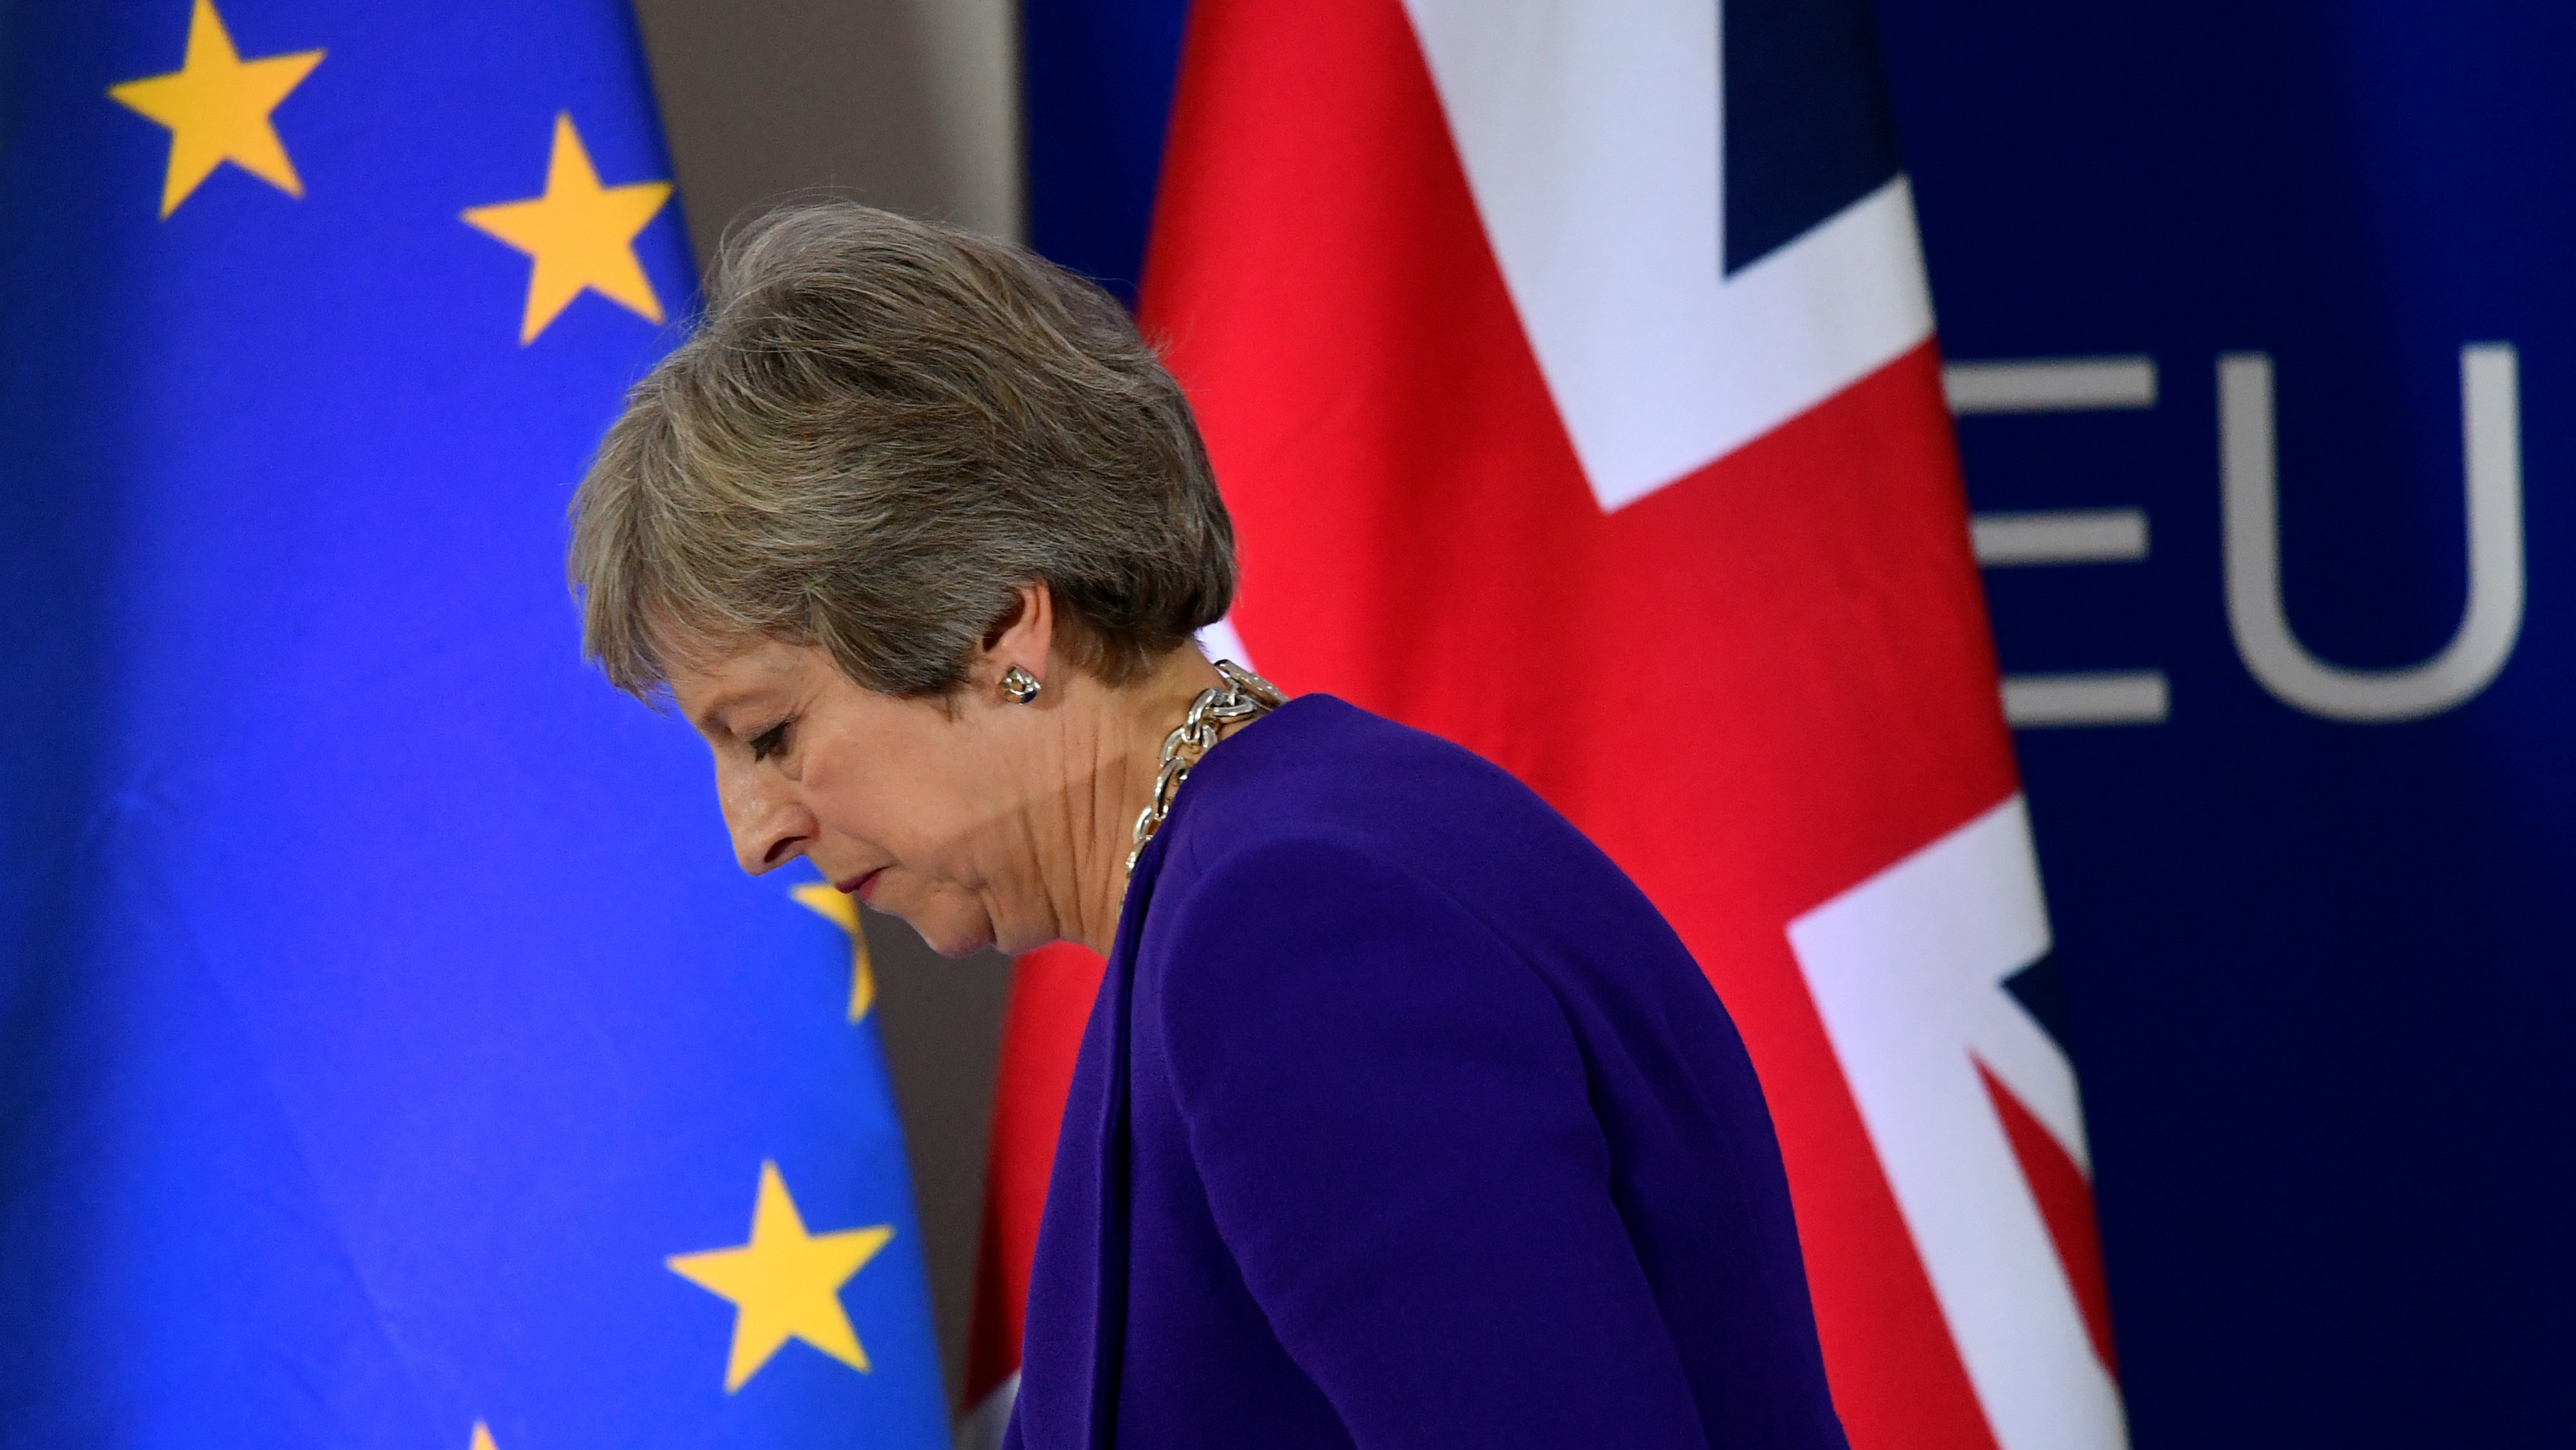 Britain's Prime Minister Theresa May leaves after a news conference at the European Union leaders summit in Brussels, Belgium October 18, 2018